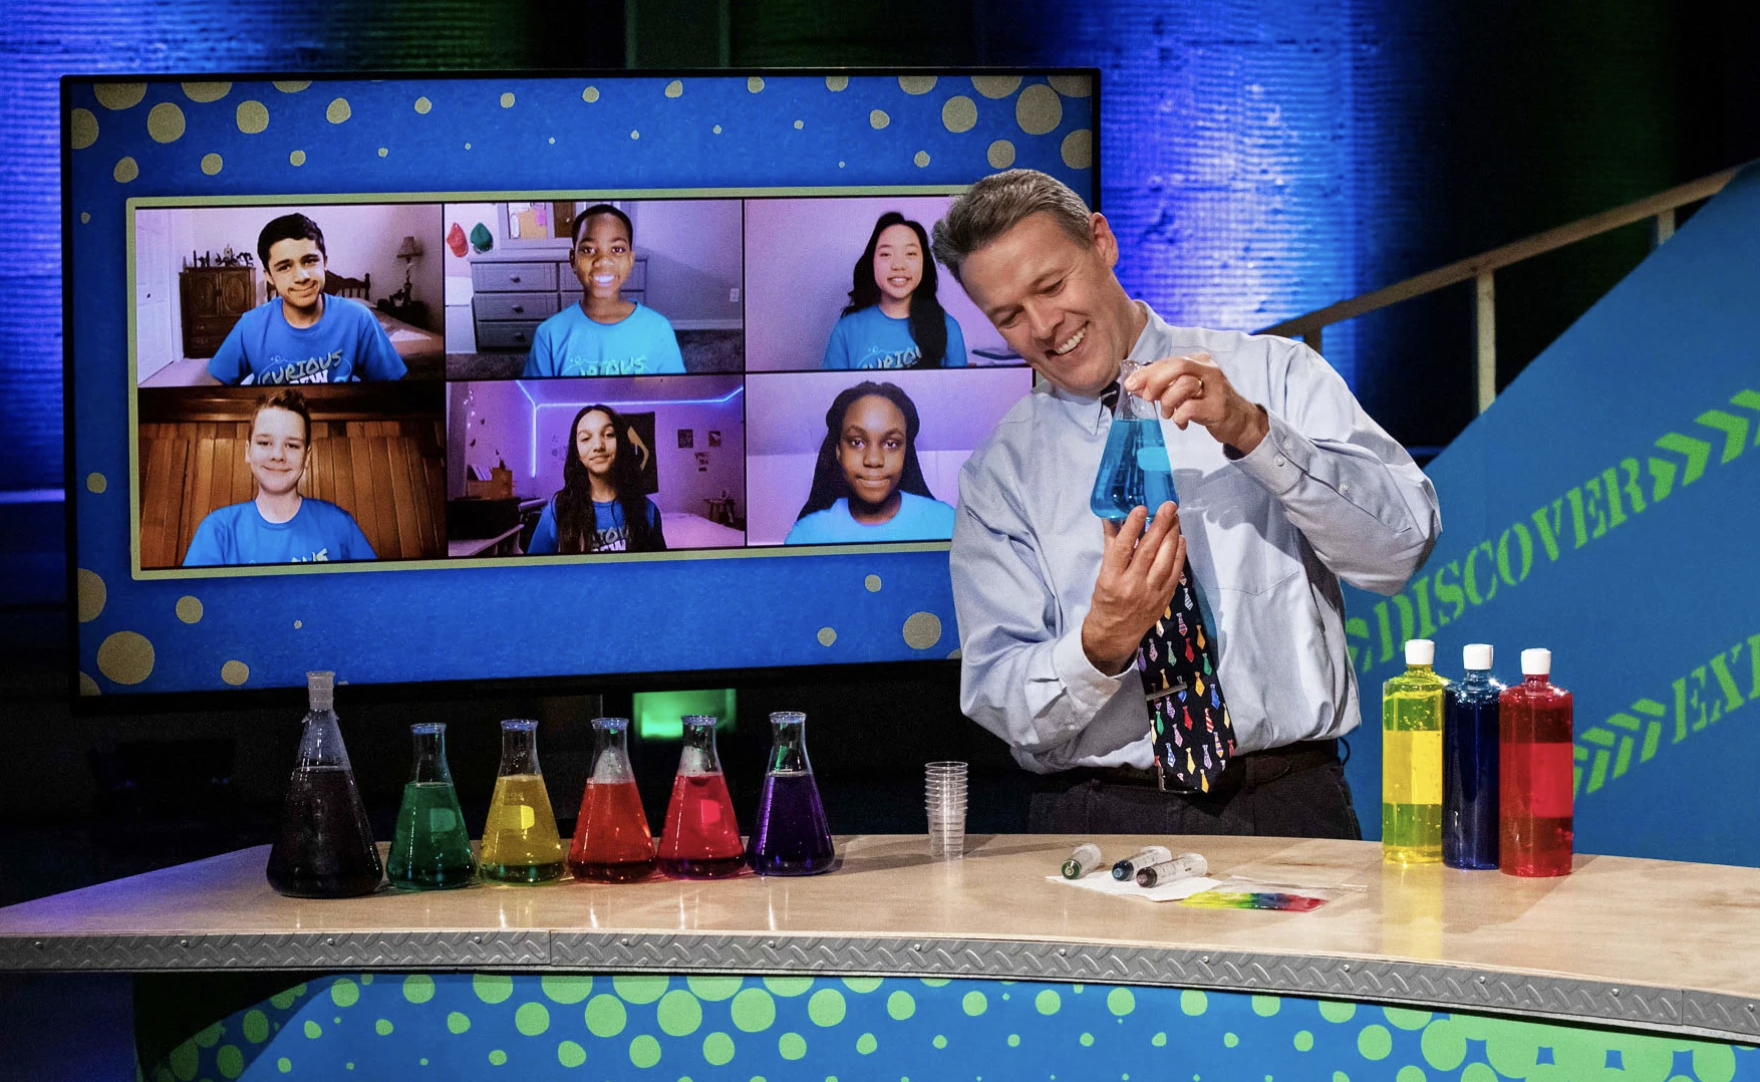 A smiling male teacher in a shirt and tie holds a beaker filled with blue water. He stands behind a long desk with five other beakers with blue, green yellow, red, and purple water, and some bottles of food coloring. Behind him is a screen with a Zoom image of six students, a boy and five girls, wearing matching blue shirts.